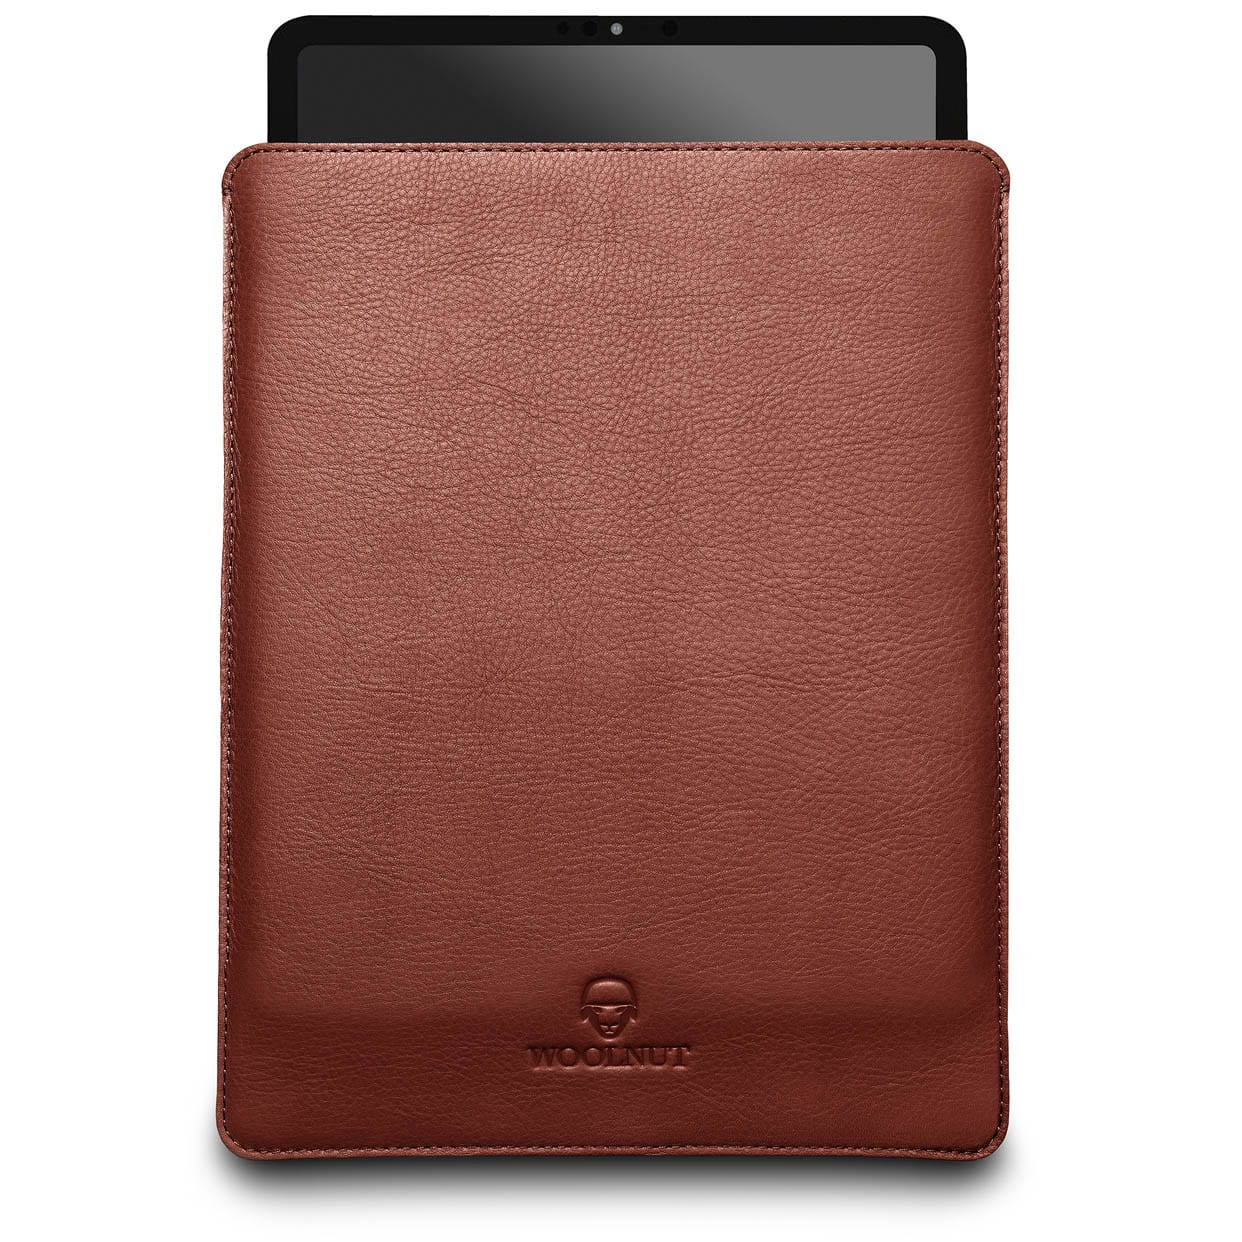 Woolnut iPad Pro 11-inch Sleeve - Cognac Brown (1 og 2 generation) 2018-2020 - Netnaturshop